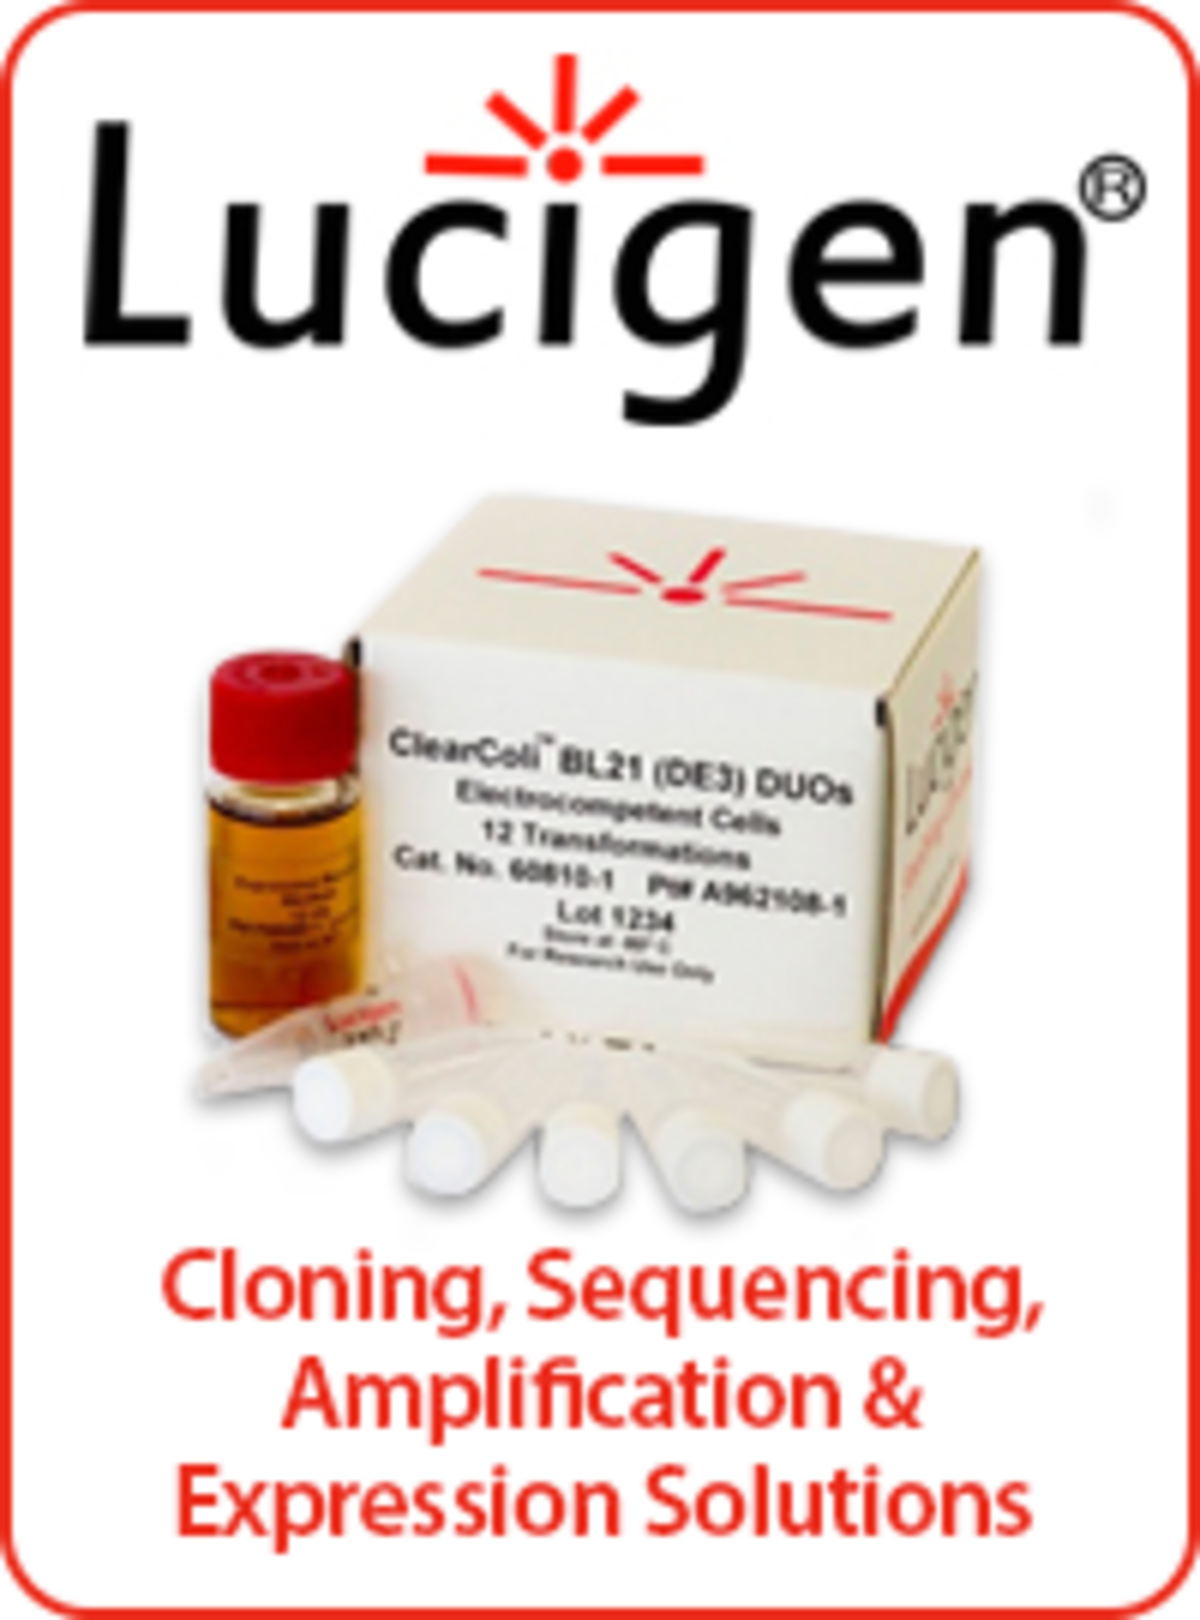 Lucigen competent cells package image